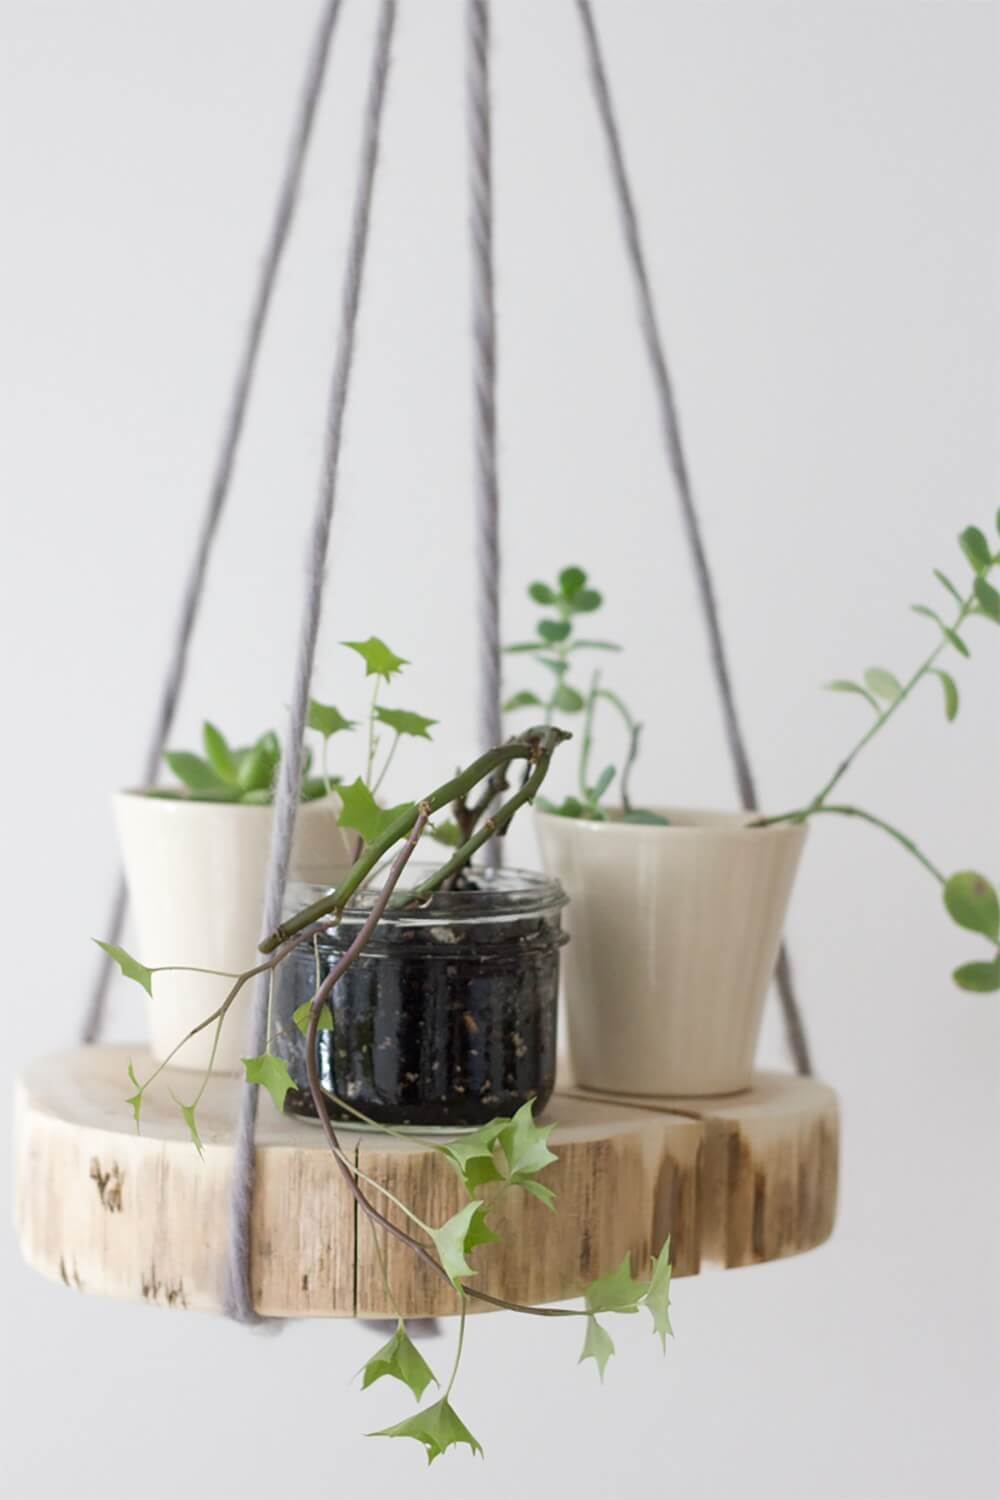 Creative Hanging Wooden Planter Shelf